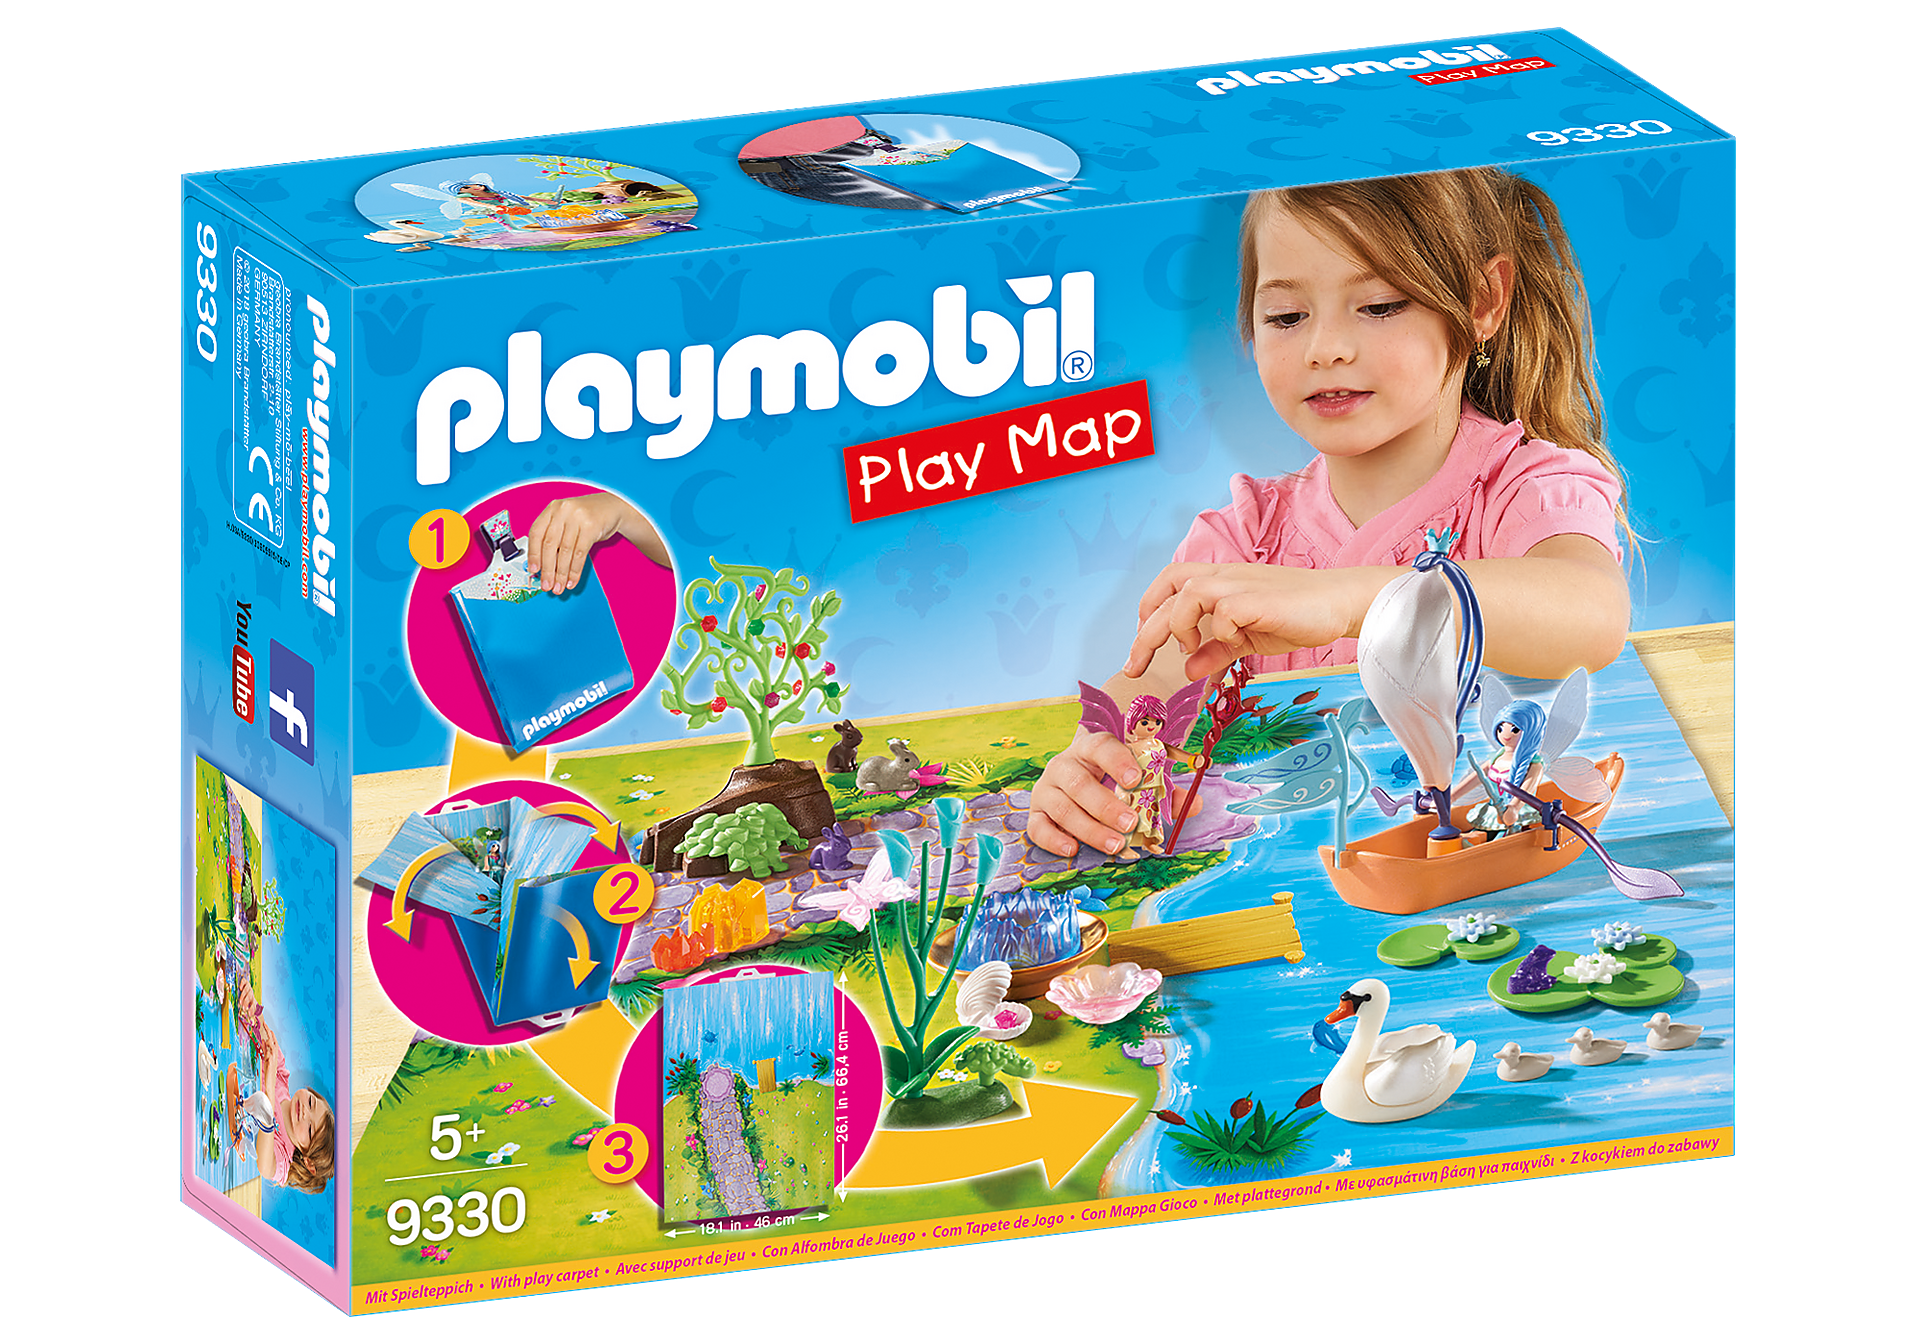 http://media.playmobil.com/i/playmobil/9330_product_box_front/Play Map Hadas de Jardín